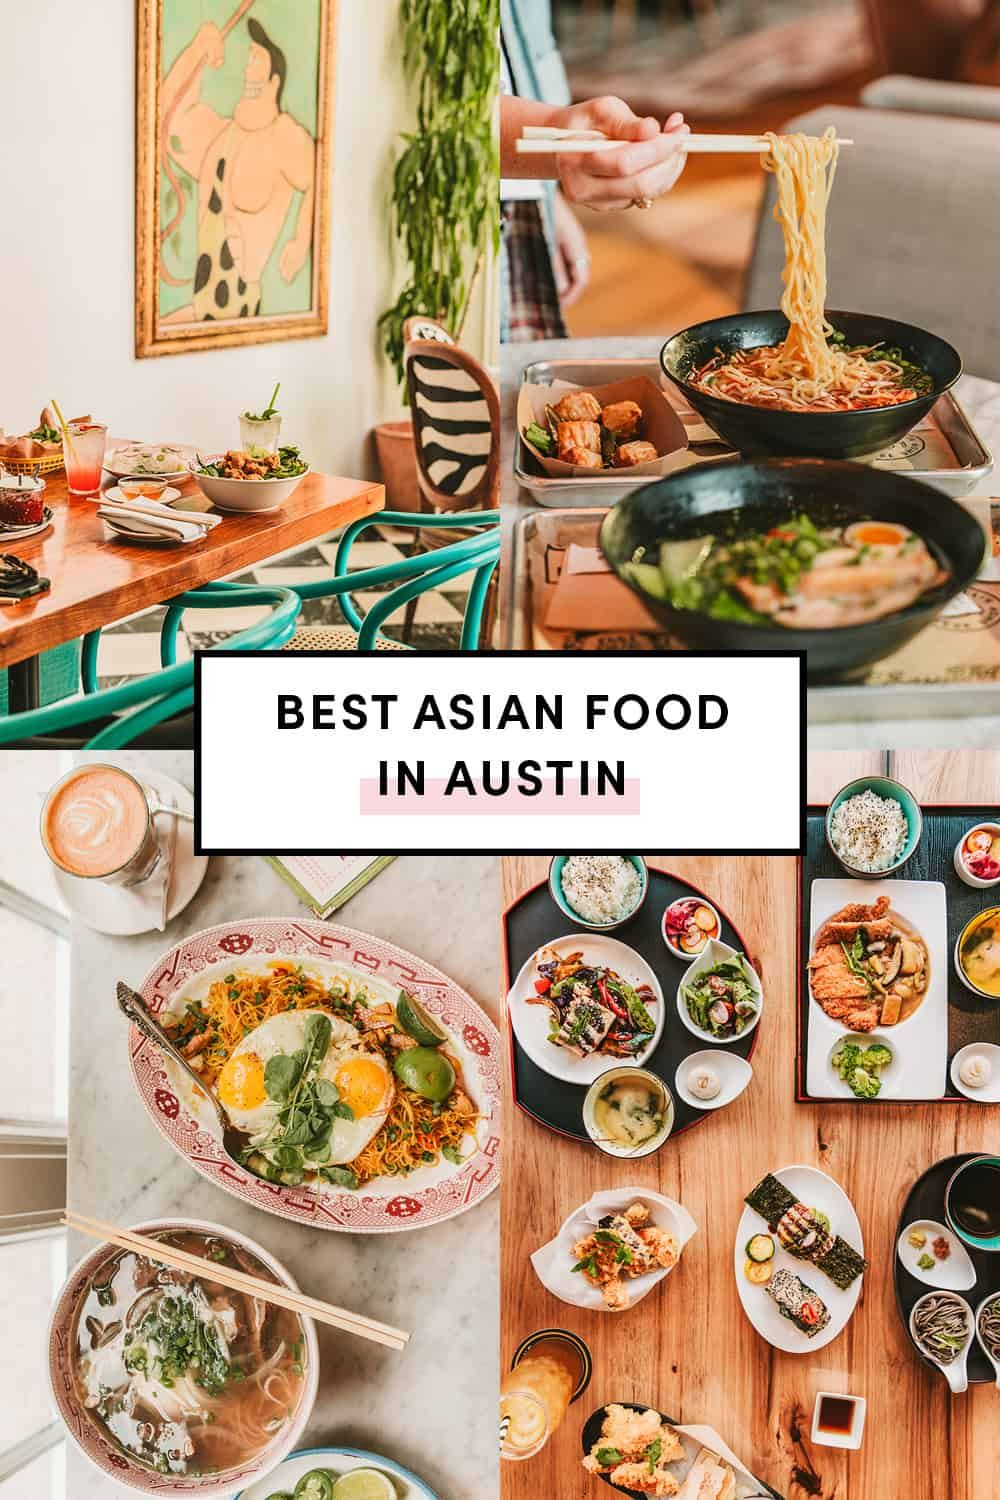 Best Asian Food In Austin A Taste Of Koko In 2020 Asian Food Austin Asian Recipes Food